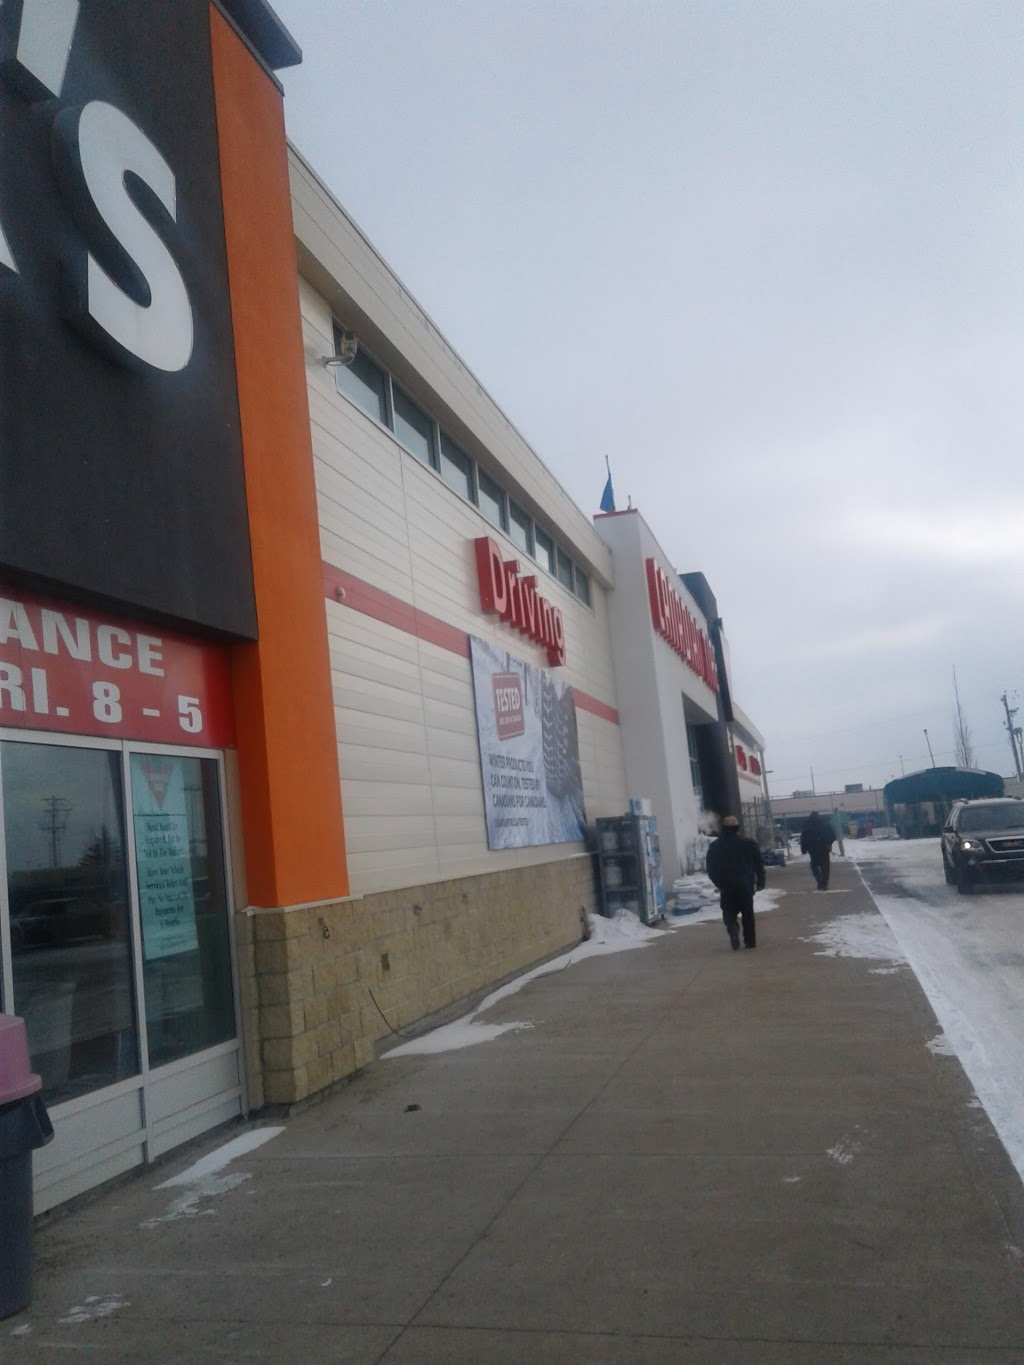 Canadian Tire   department store   3851 56 St, Wetaskiwin, AB T9A 2B1, Canada   7803527135 OR +1 780-352-7135